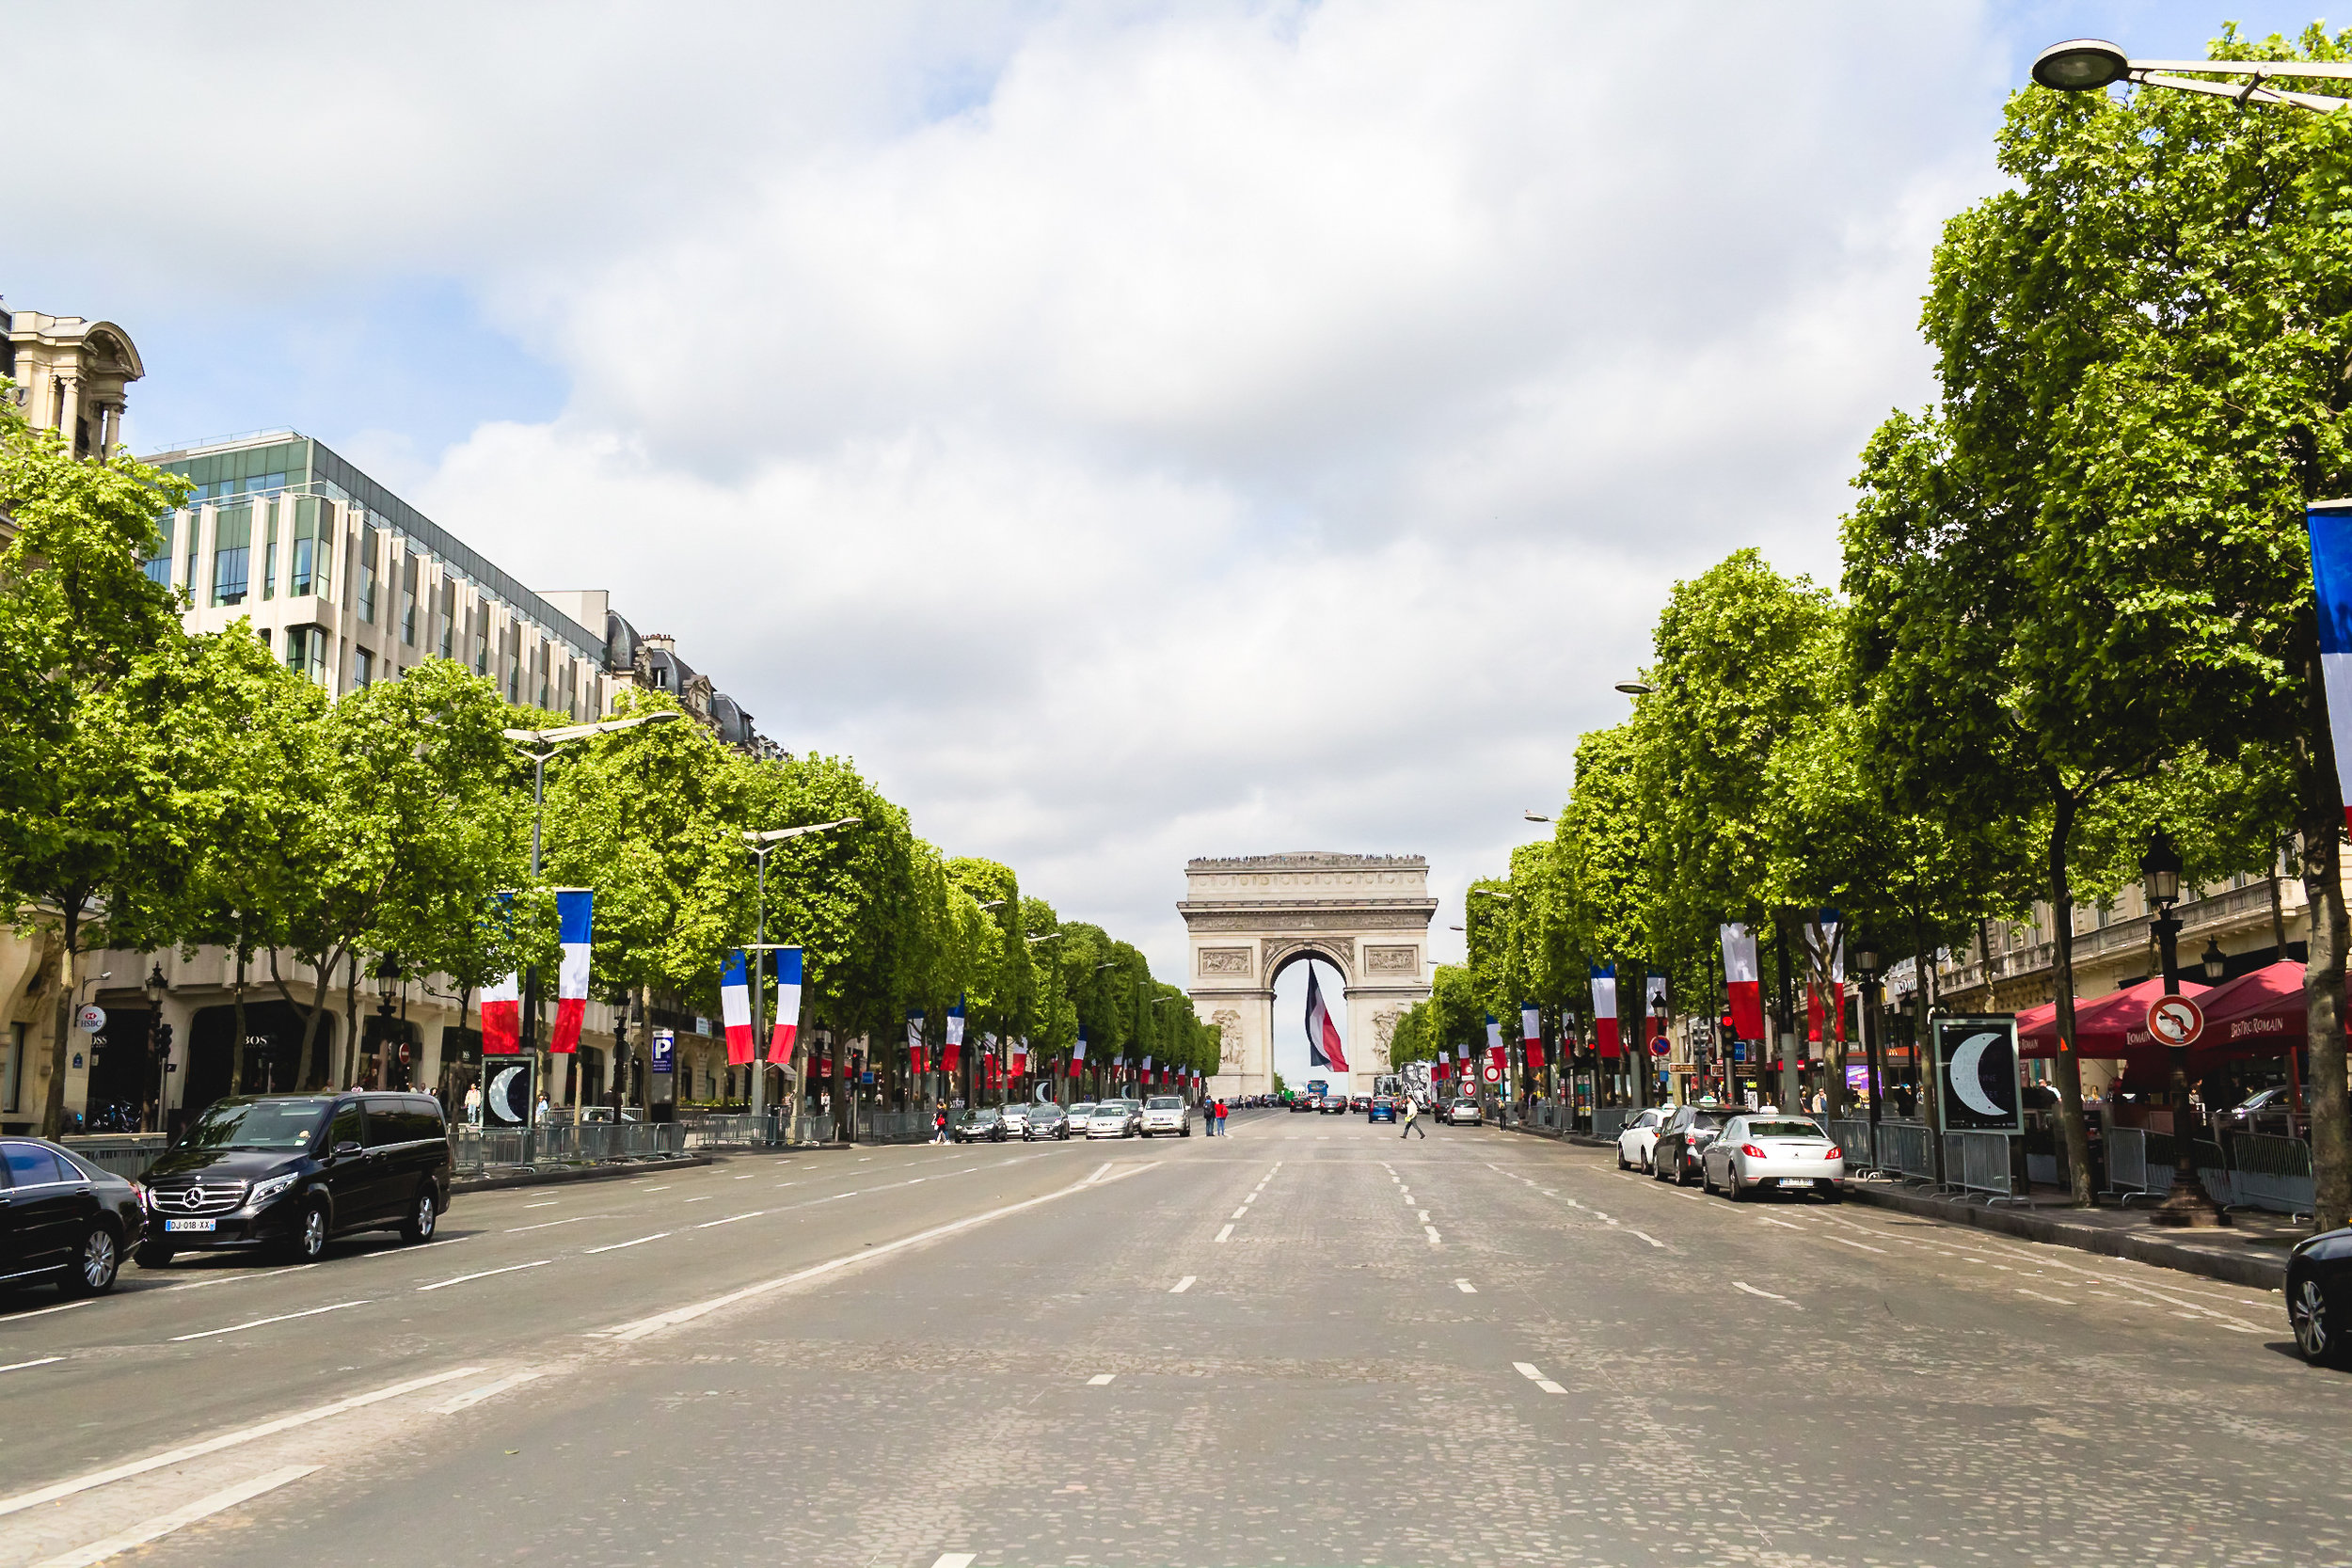 Paris.France.Eiffle.Tower.streets.architecture.best.fiveformay-8.jpg